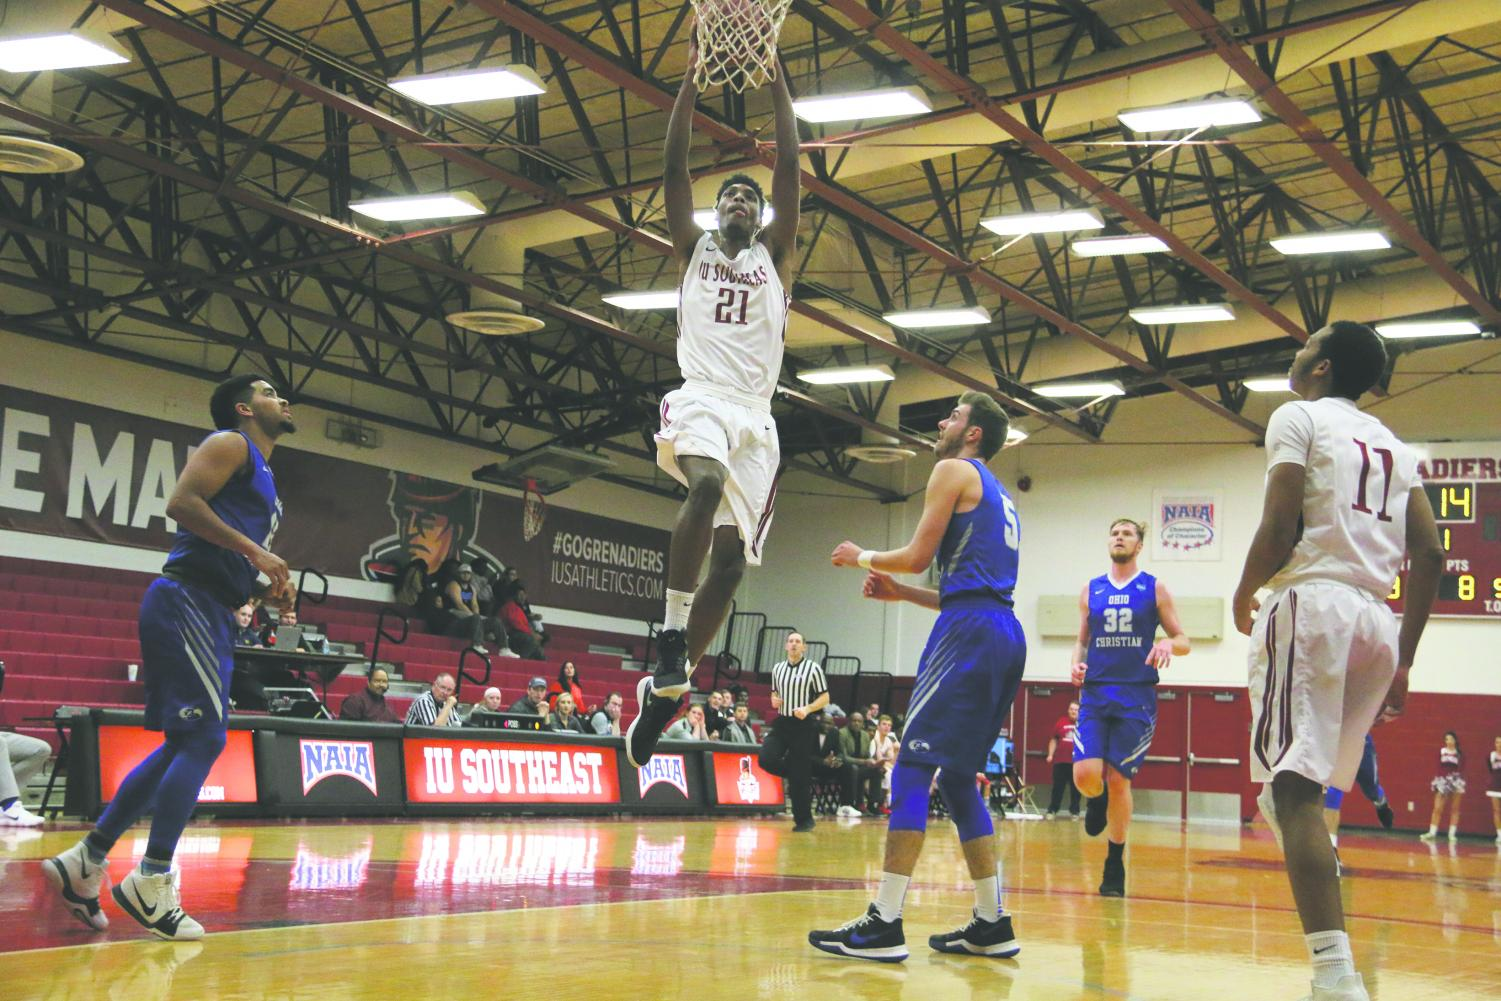 Joe Jackson, senior forward, jumps toward the basket for a dunk against Ohio Christian. Jackson is one of the nation's best defensive players, leading NAIA Division II in both total blocks and blocks per game.